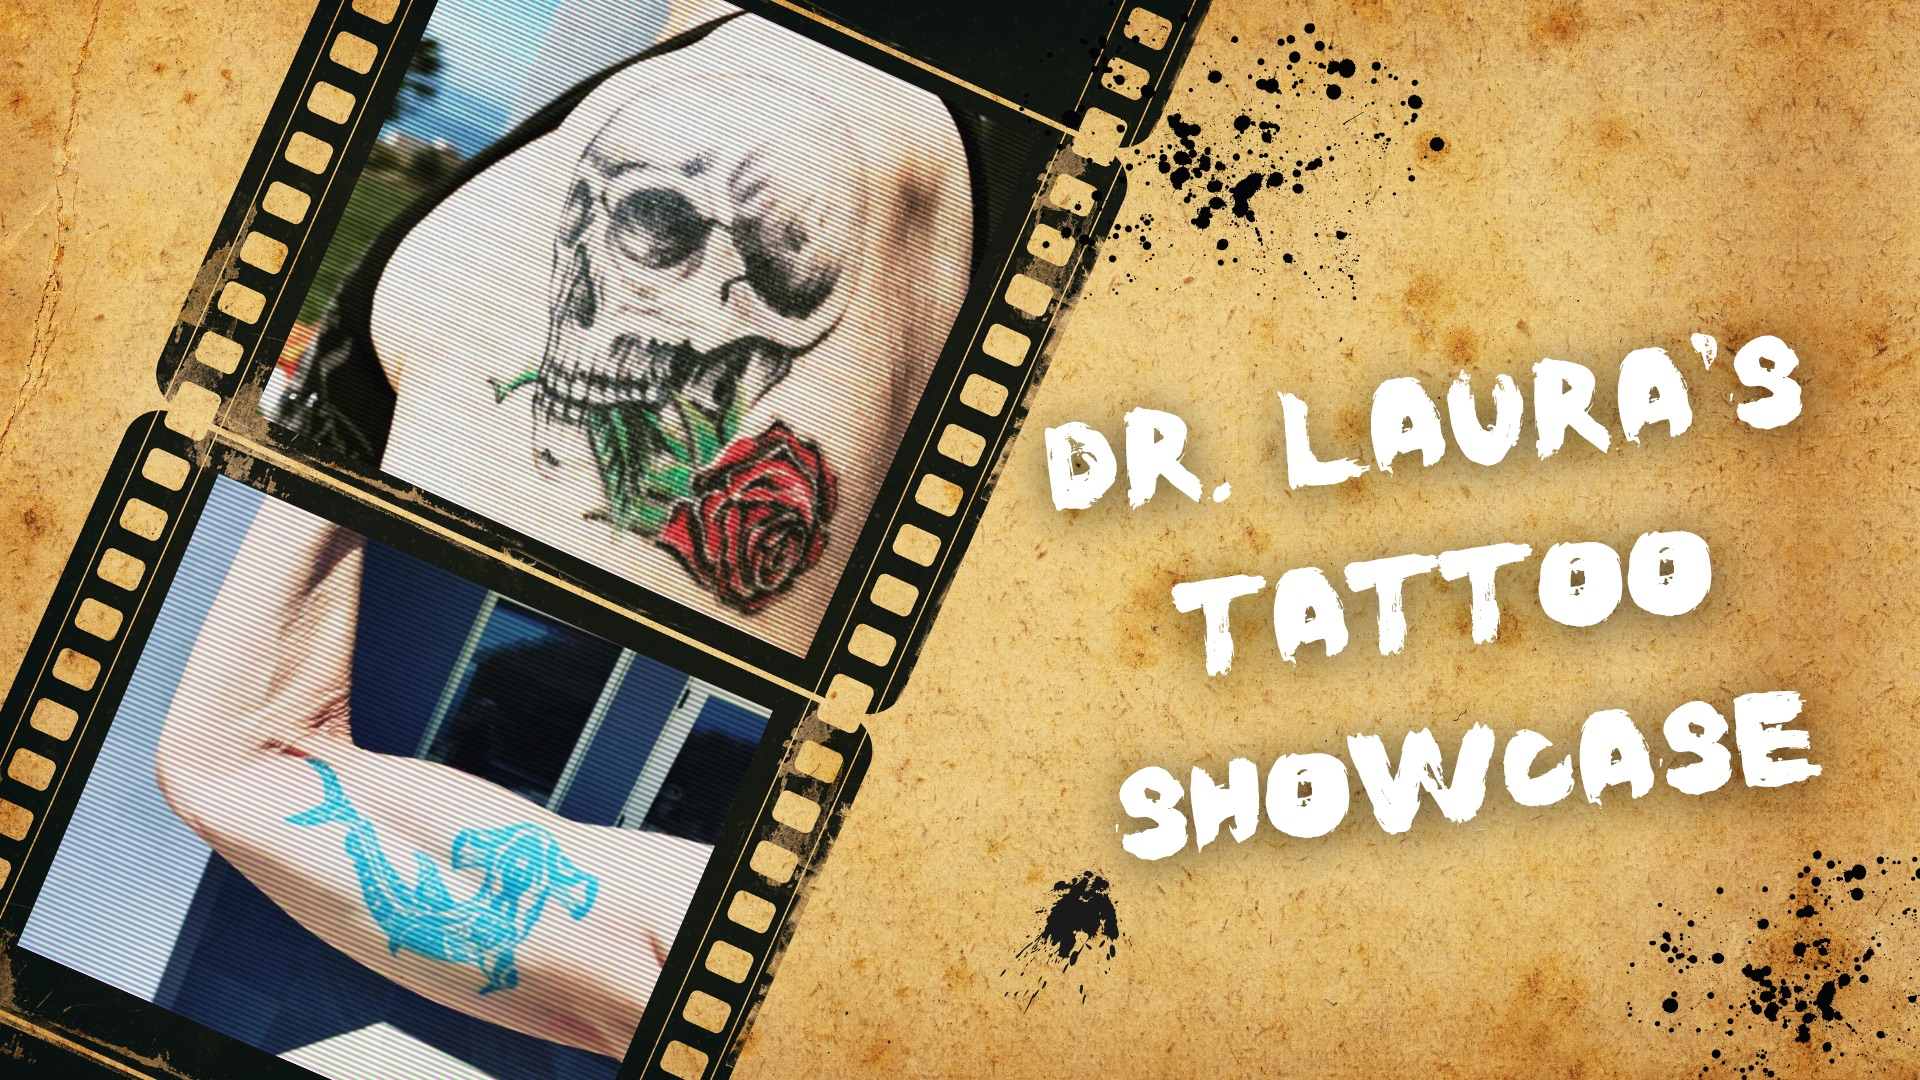 YouTube: Dr. Laura's Tattoo Showcase